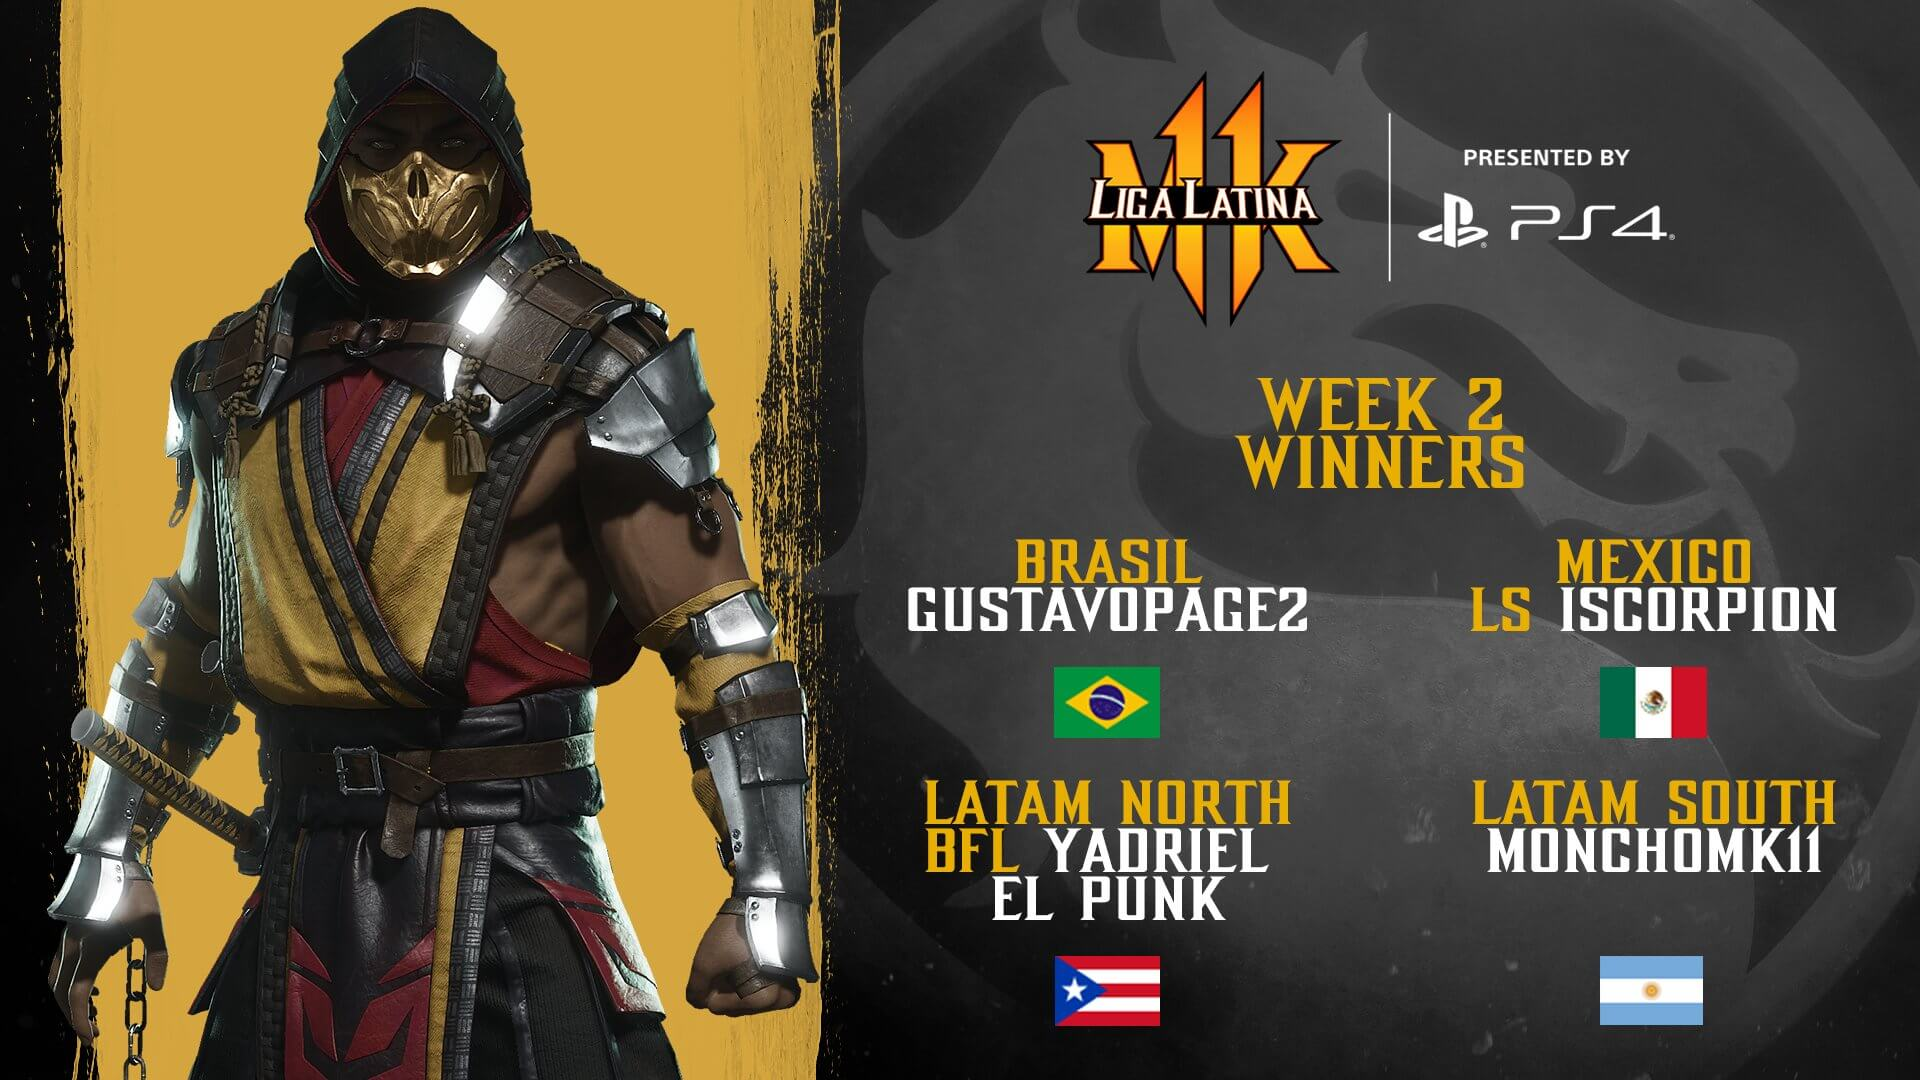 Pro Kompetiton - Liga Latina Week 2 Winners